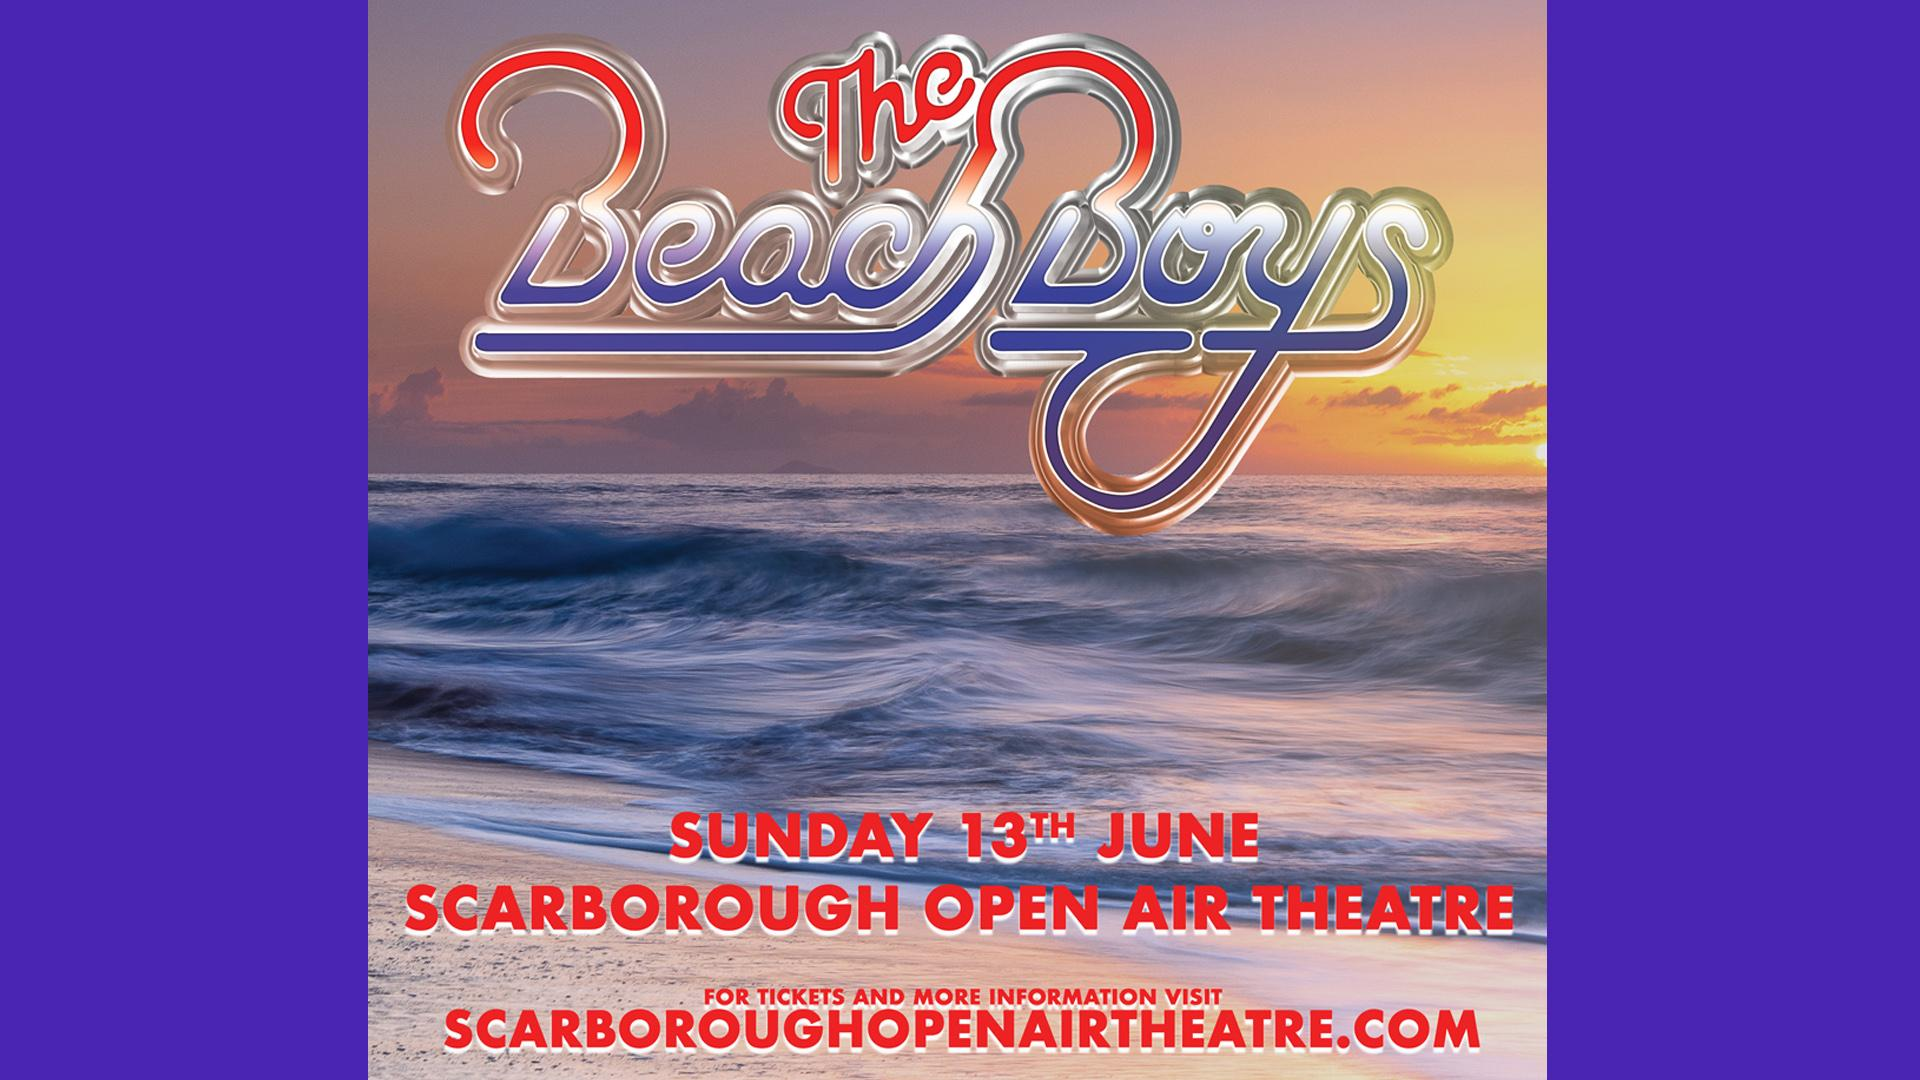 Promotional image for Beach Boys show at Scarborough Open Air Theatre